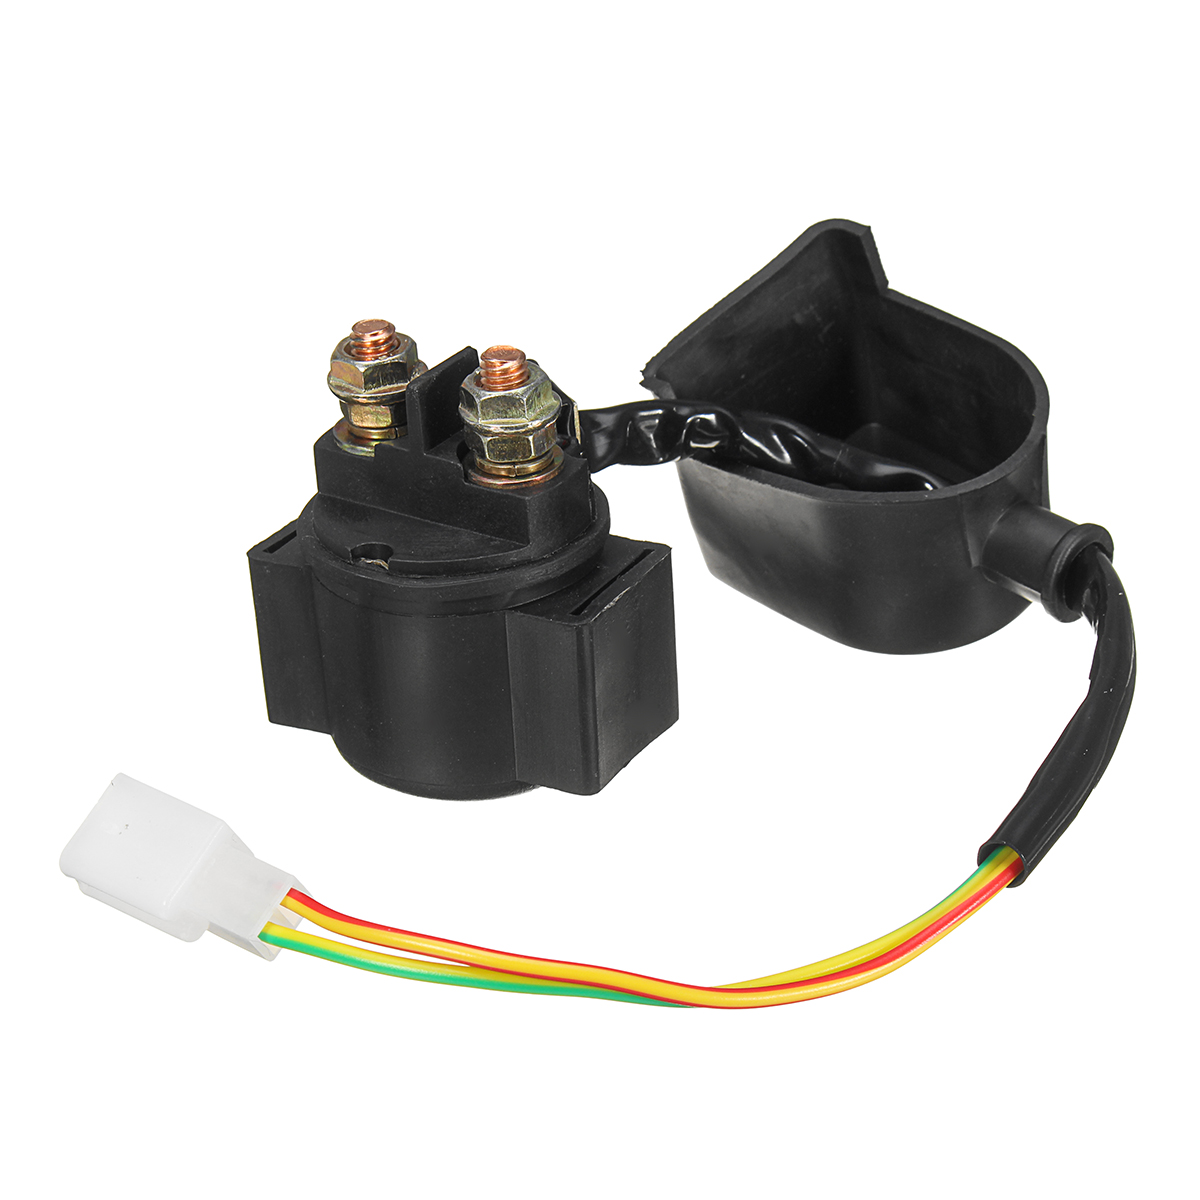 Back To Search Resultsautomobiles & Motorcycles Atv,rv,boat & Other Vehicle Forceful 12v Starter Solenoid Relay For Atv Go Kart Pit Dirt Bike Quad 90cc 110cc 125cc Skilful Manufacture